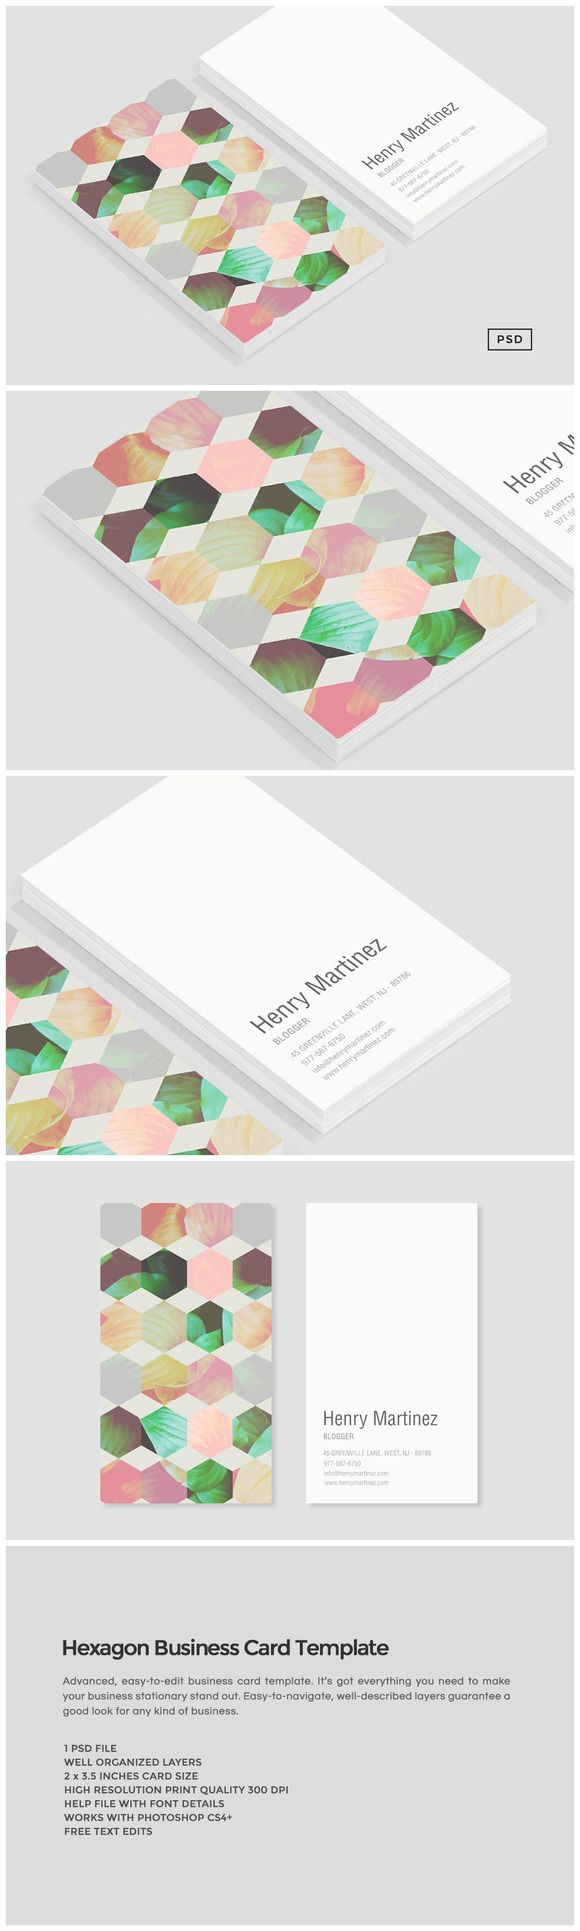 Hexagon Business Card Template by Design Co. on @creativemarket